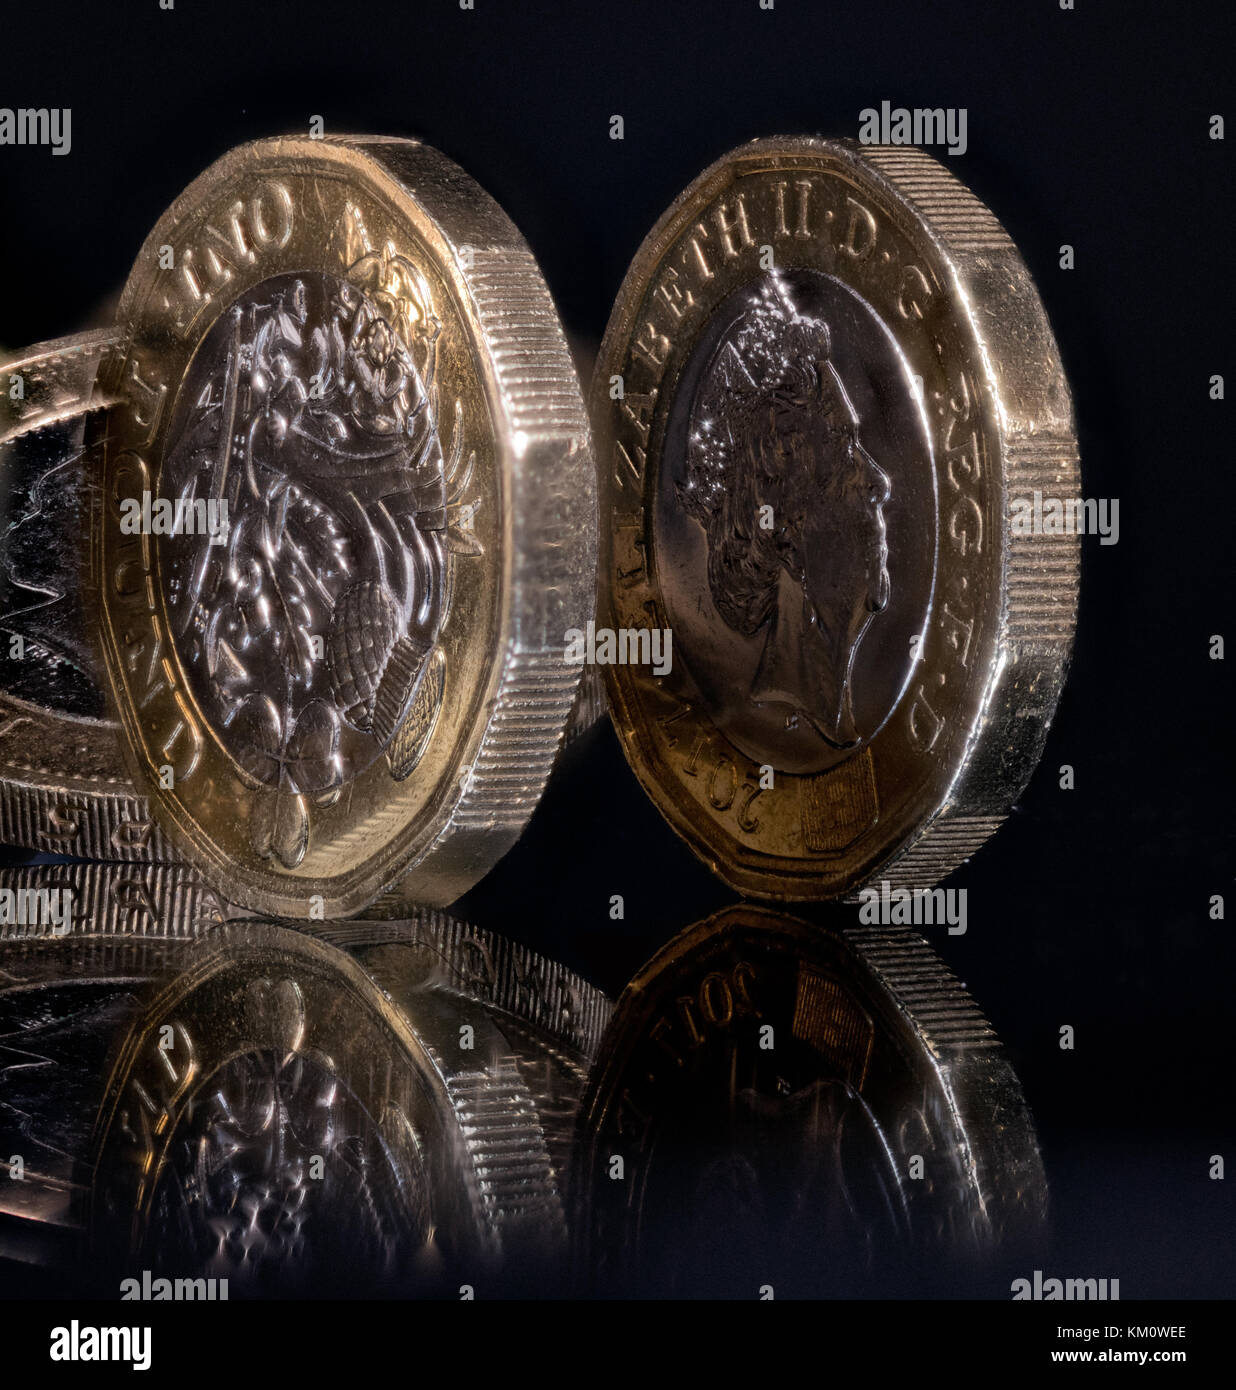 Coinage from the UK - Stock Image